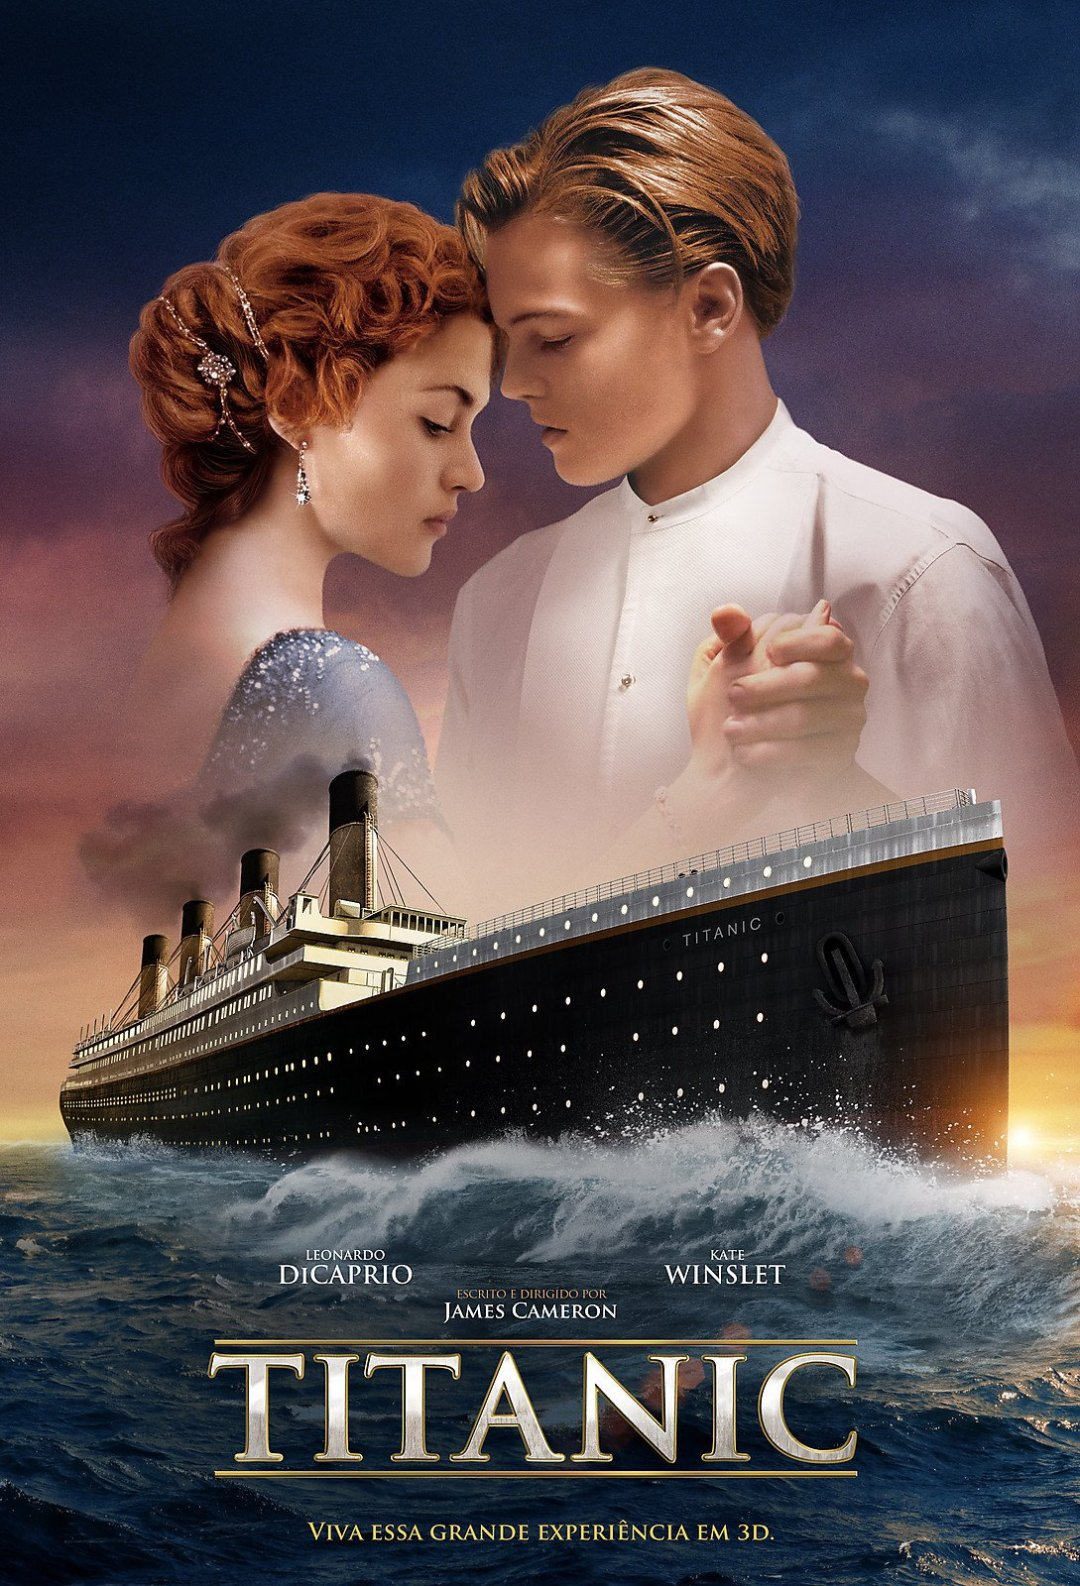 Titanic  poster is copied by Mausam